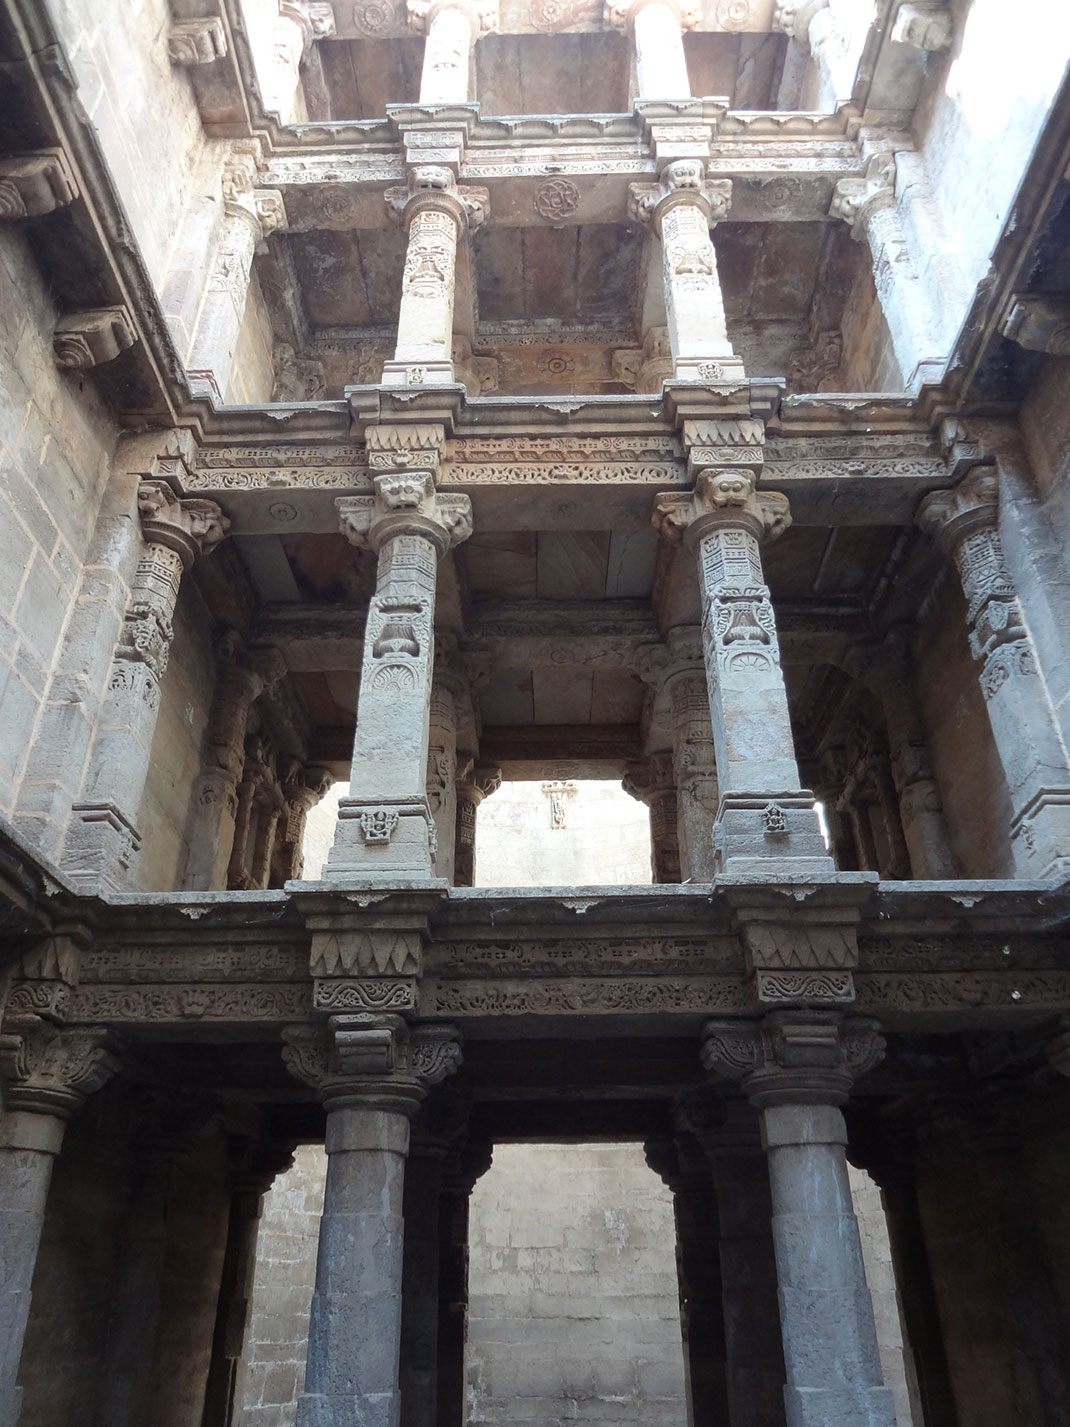 Admire These 2000 Year Old Somptous Buildings In India Destined To Disappear-26